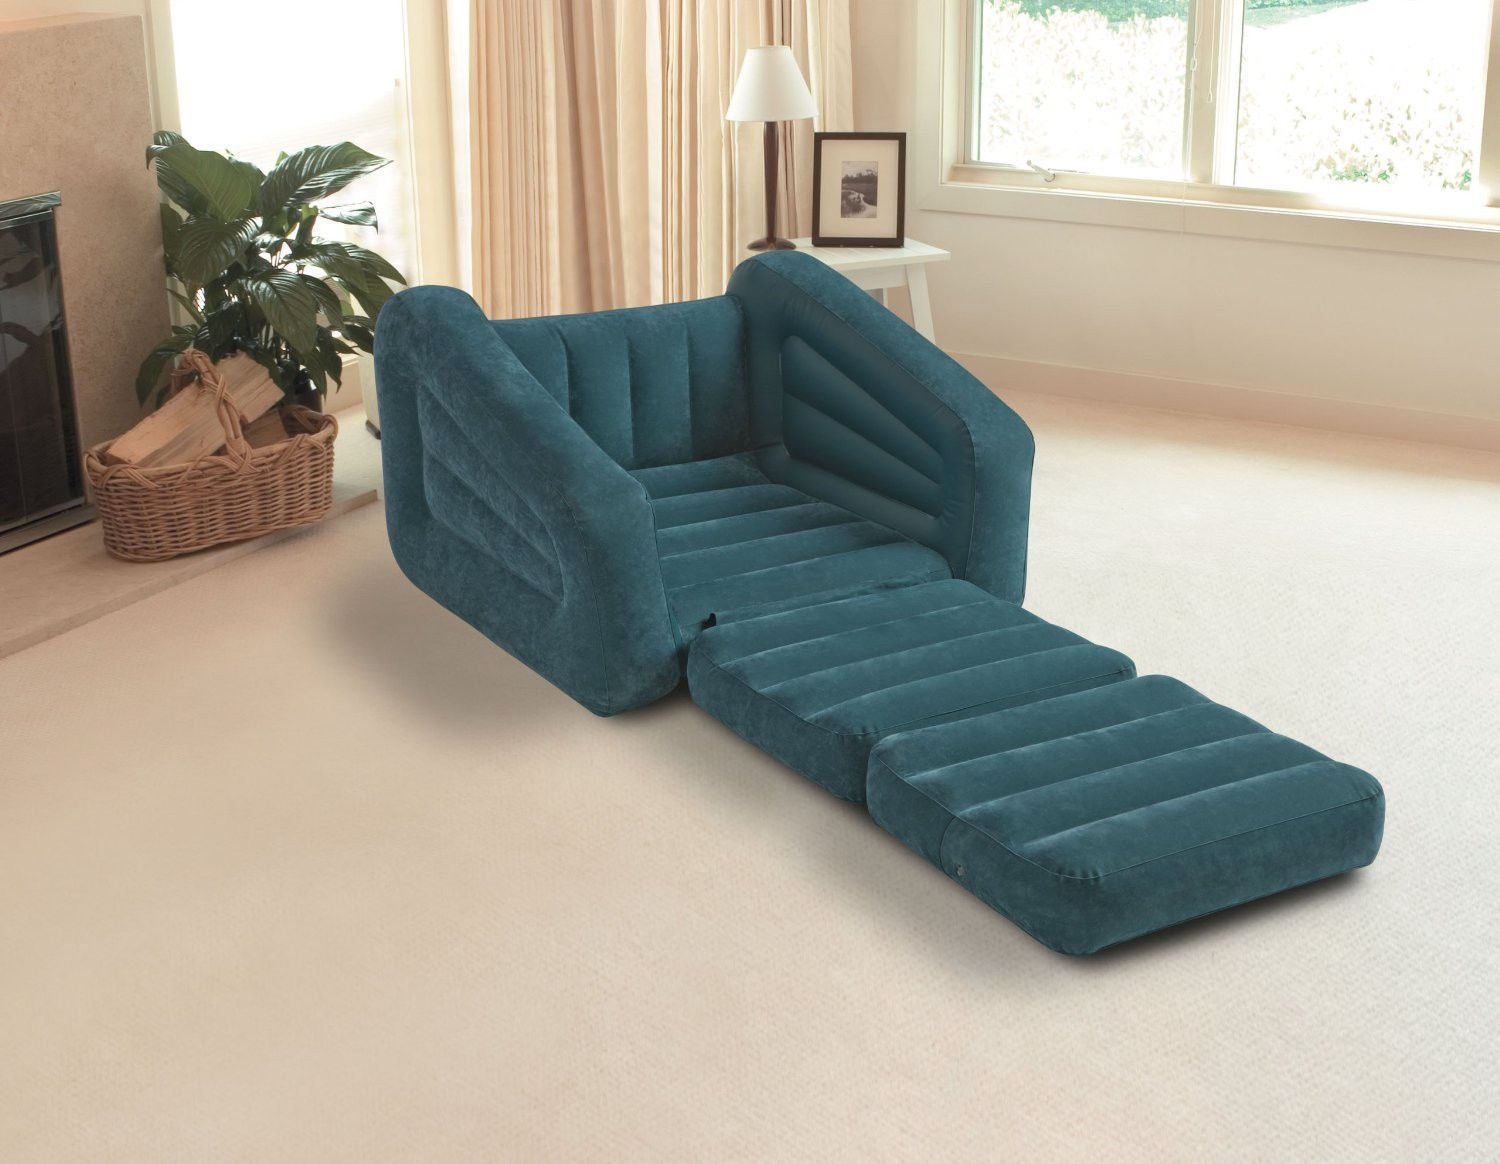 Image for Elegant Sleeper Sofa Mattress